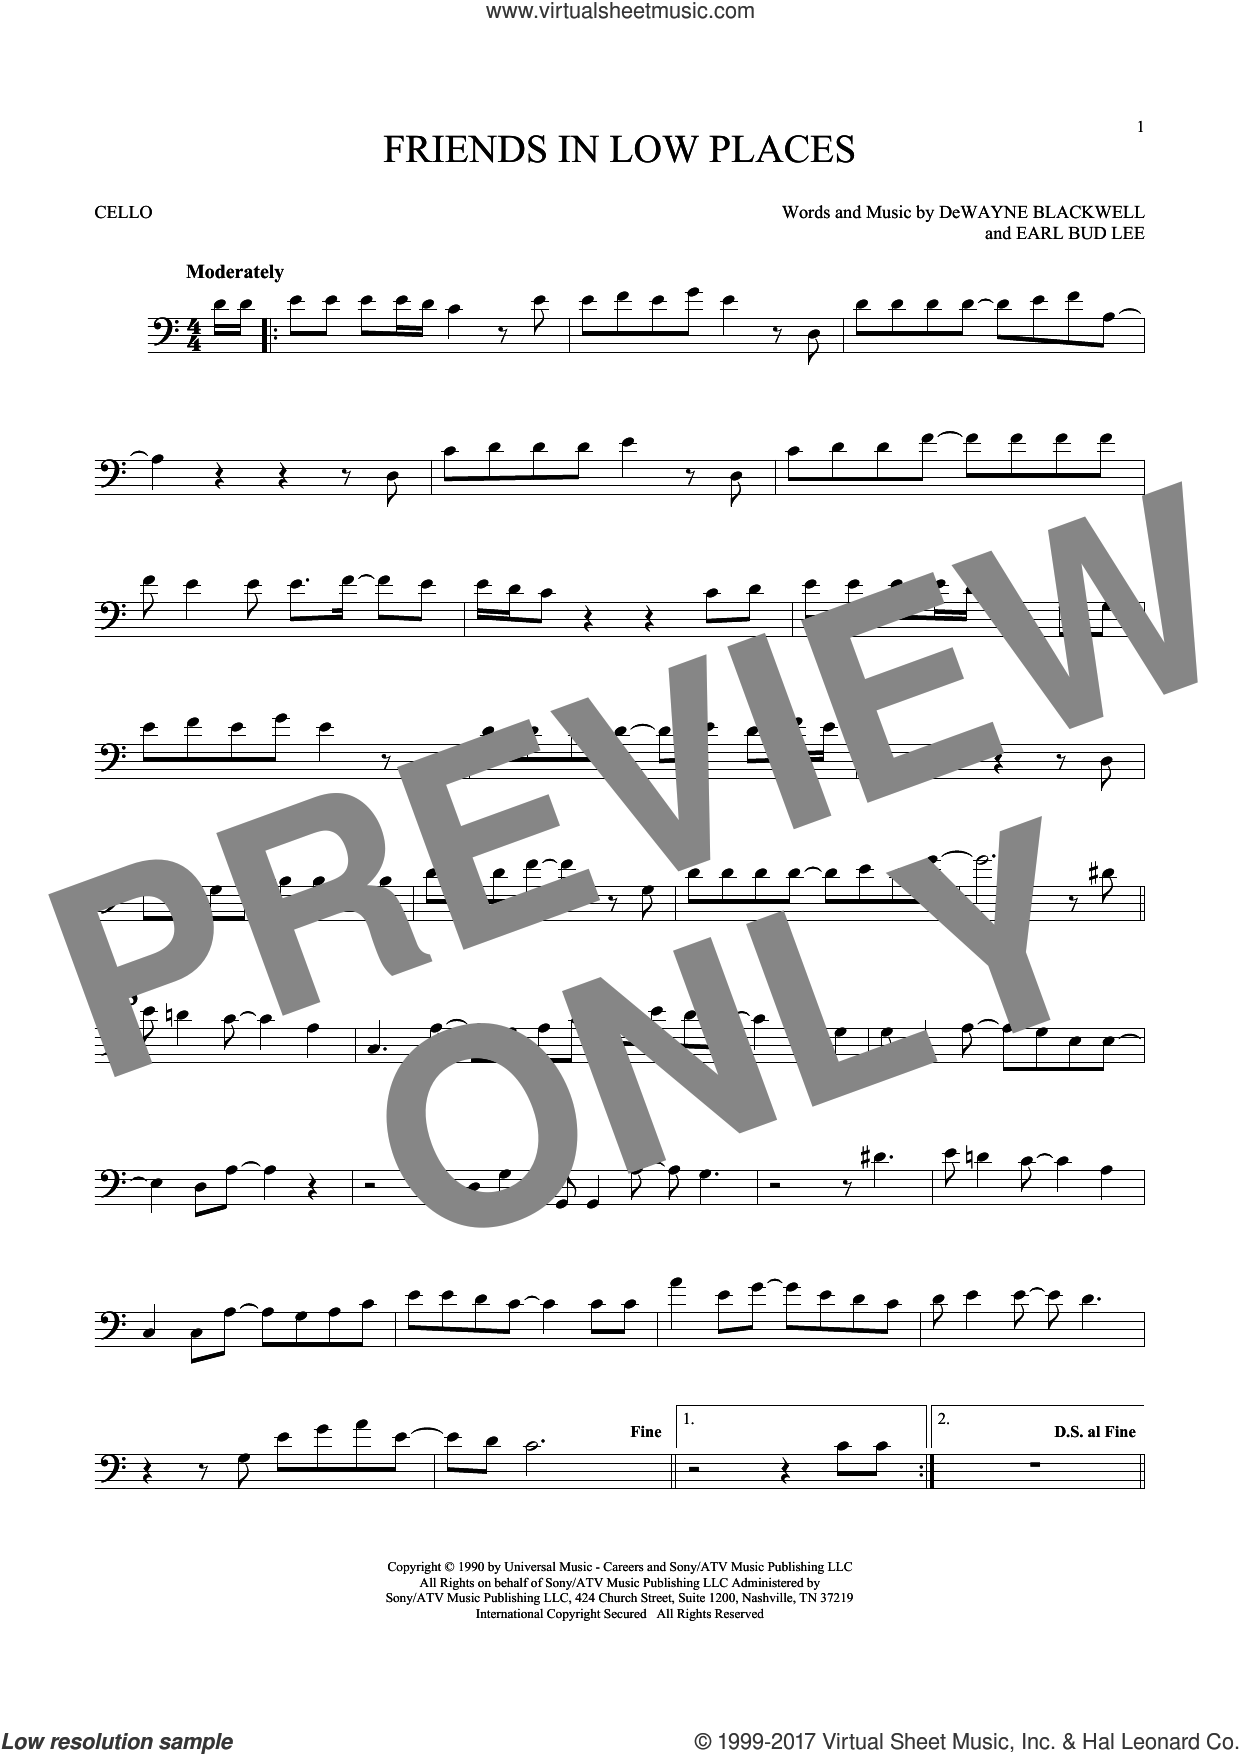 Friends In Low Places sheet music for cello solo by Garth Brooks, DeWayne Blackwell and Earl Bud Lee, intermediate skill level